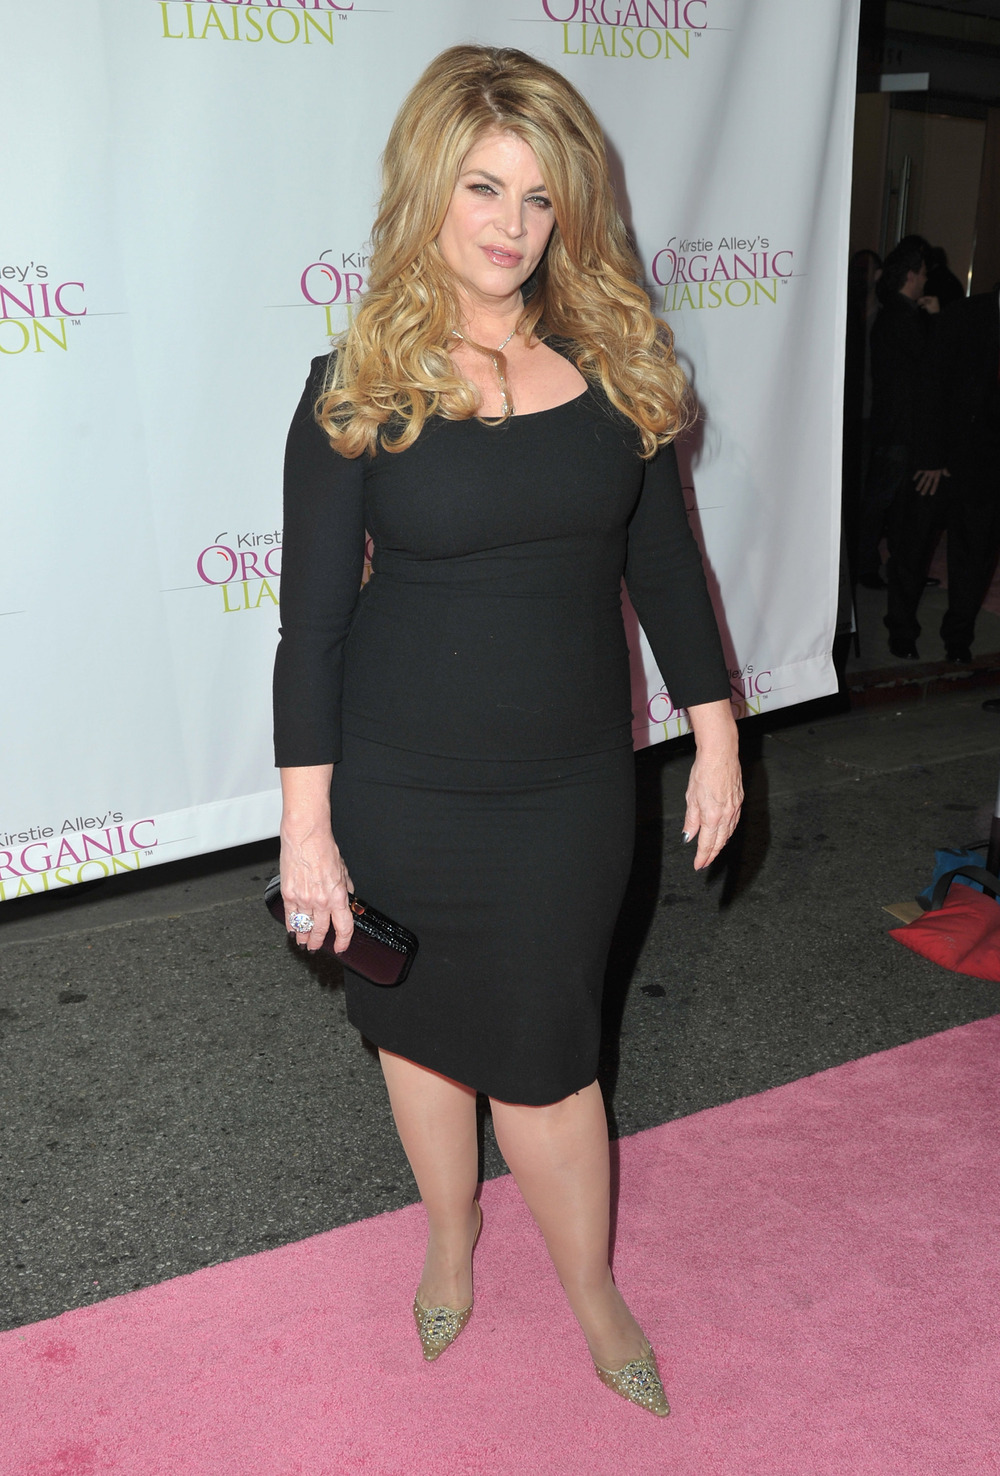 Kirstie Alley Applauds Kanye, Tells Other Stars to Beat Up Paparazzi